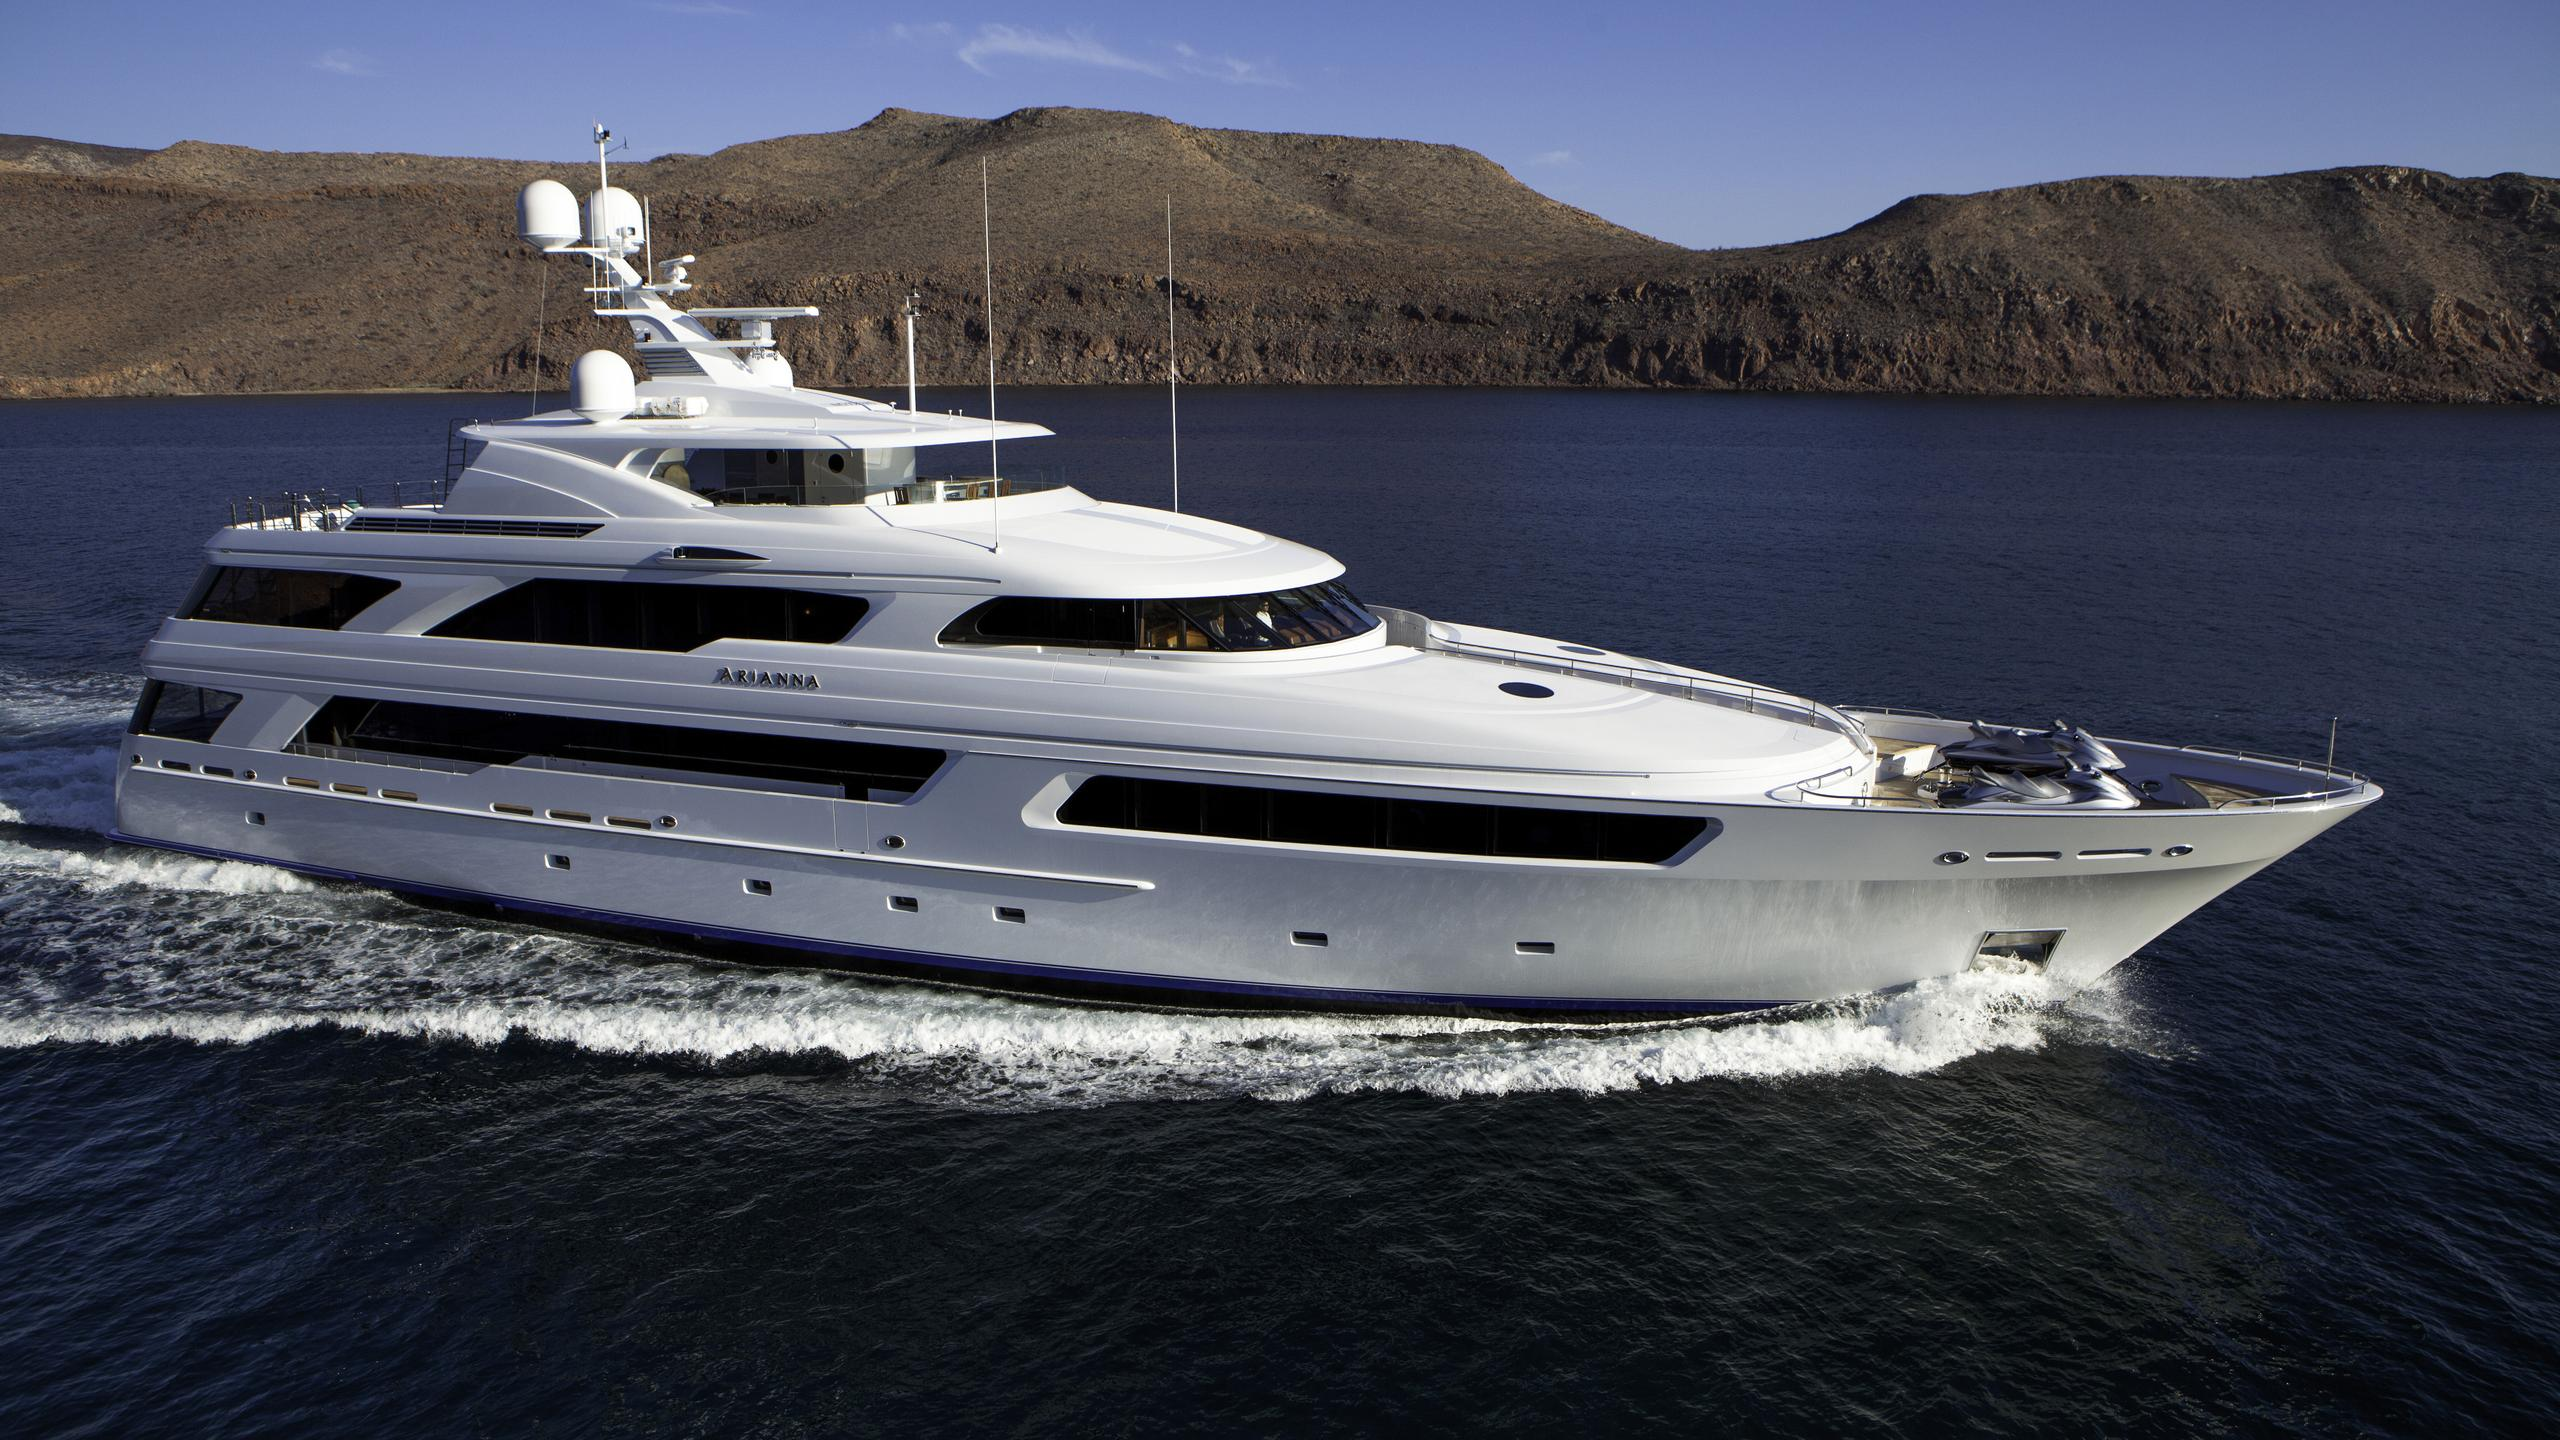 arianna-yacht-for-sale-profile